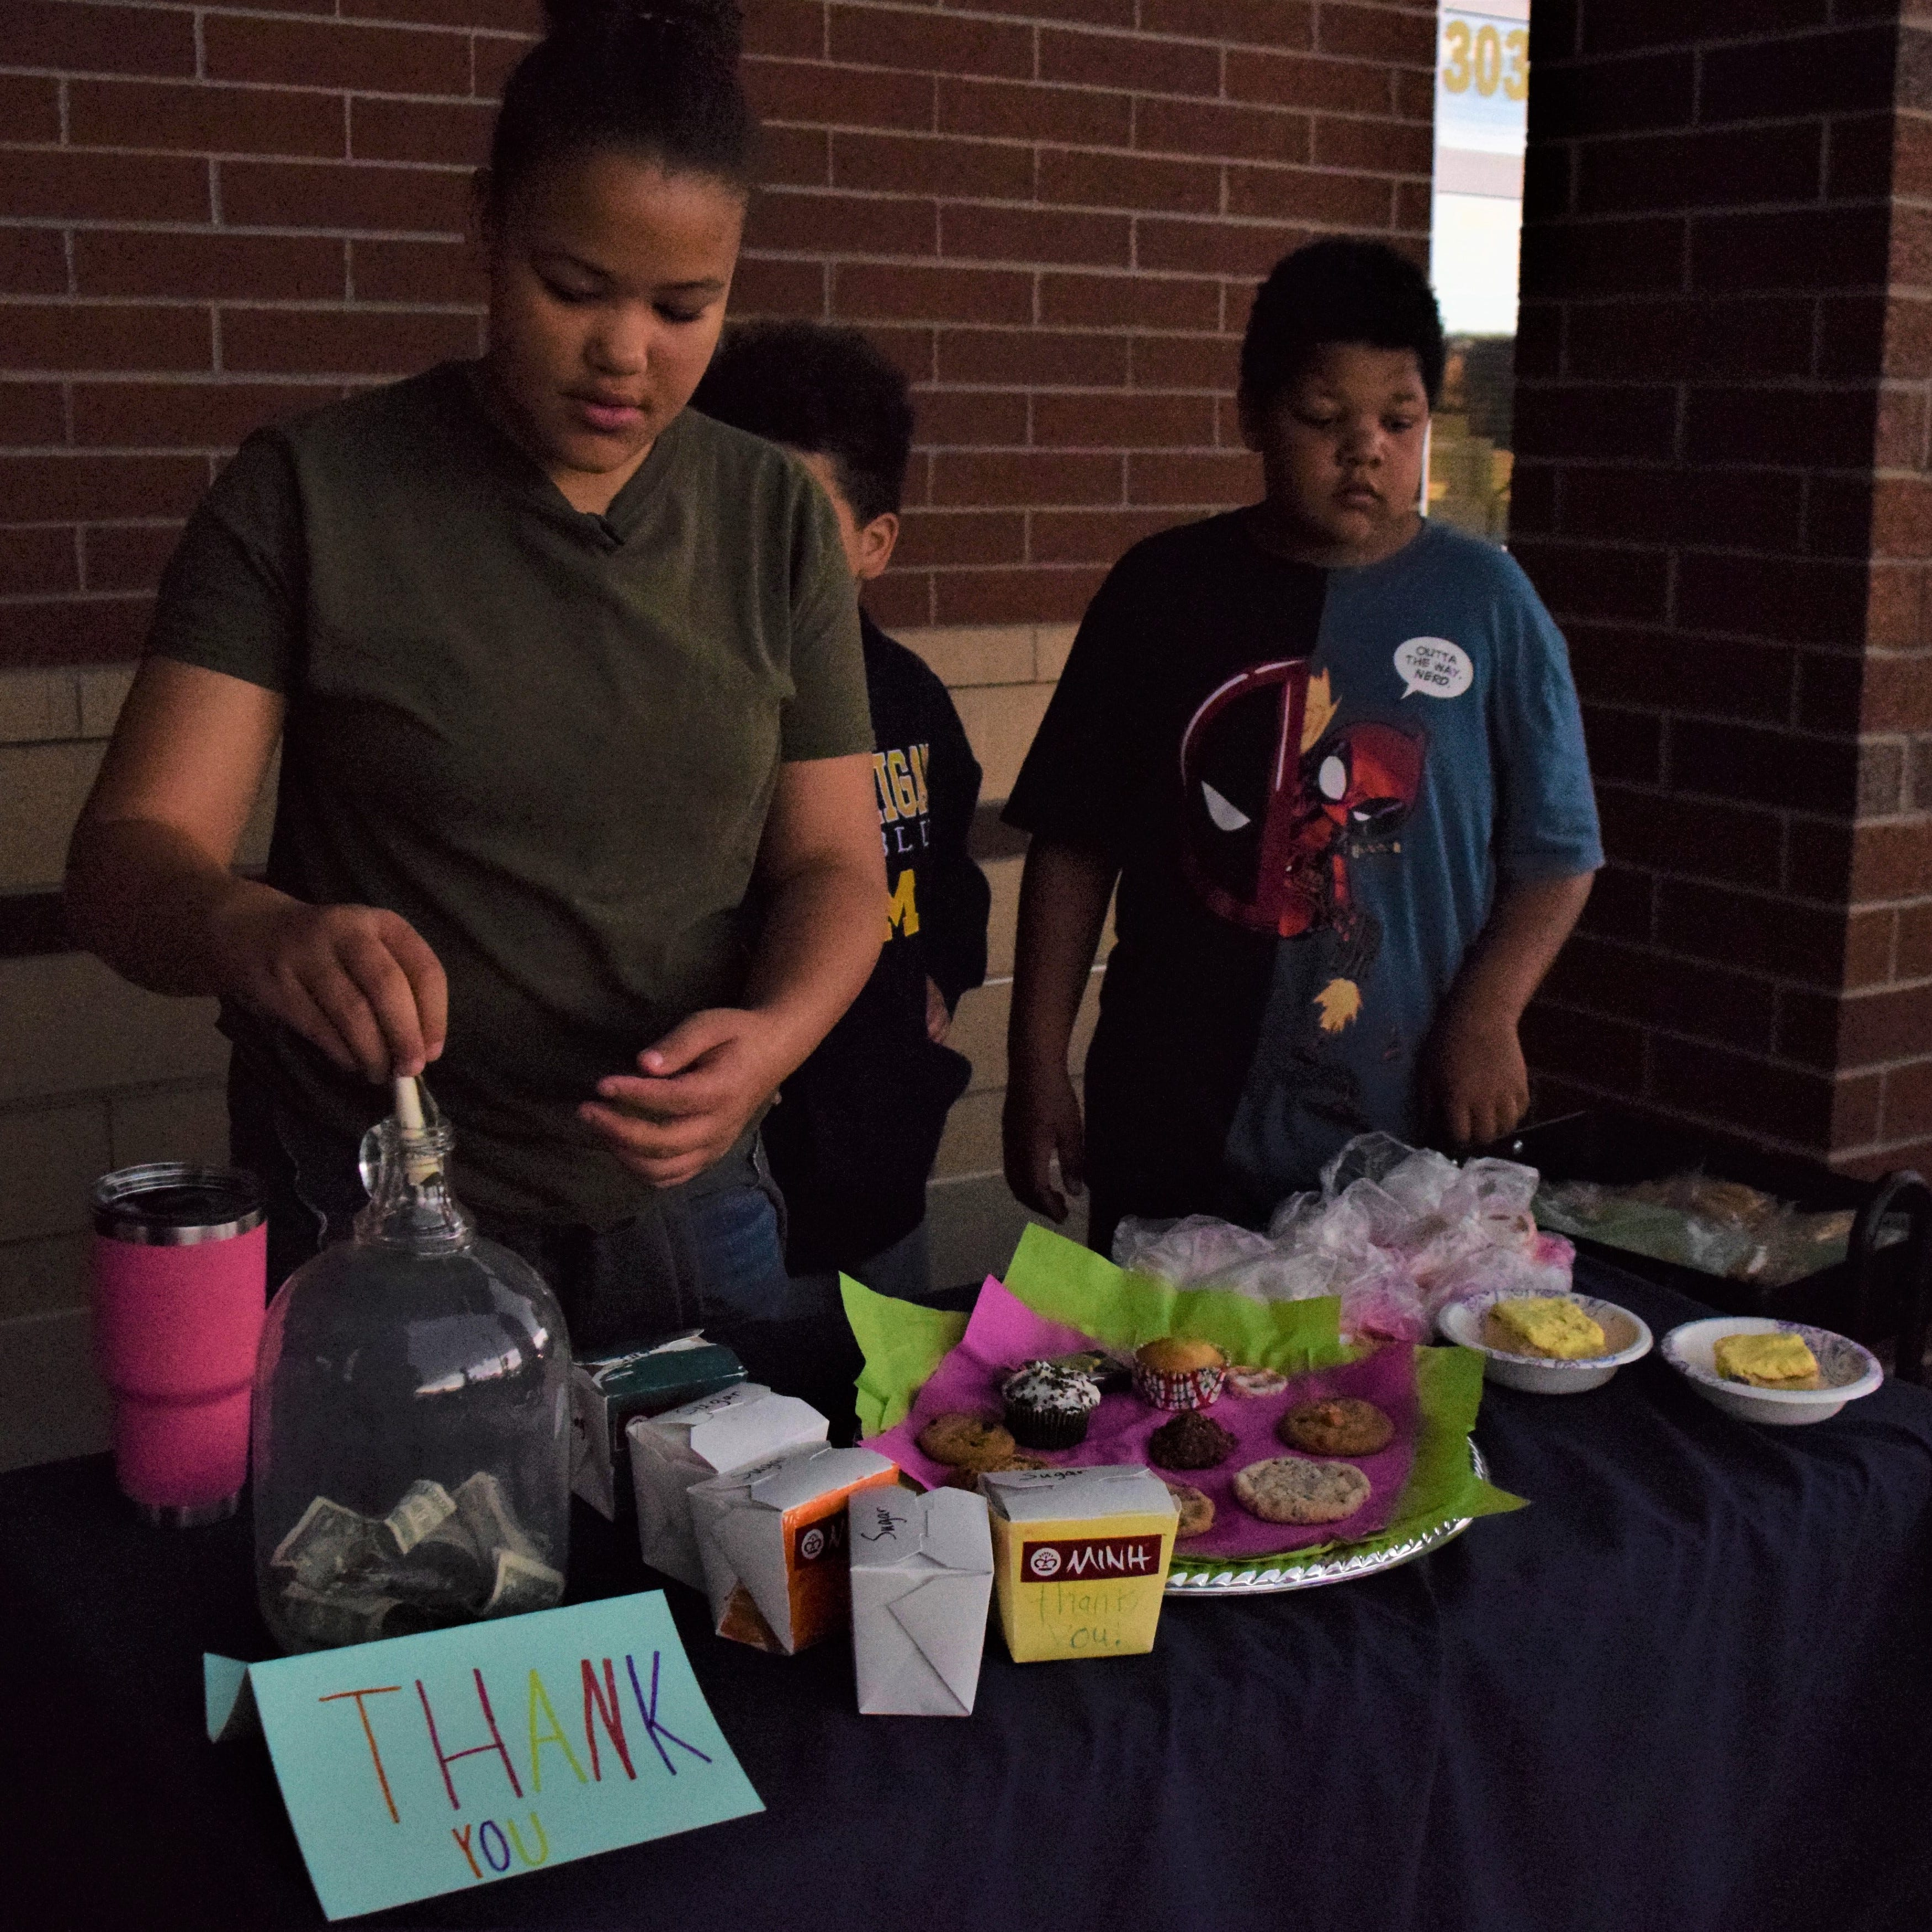 Students lead fundraiser to help pay lunch debt